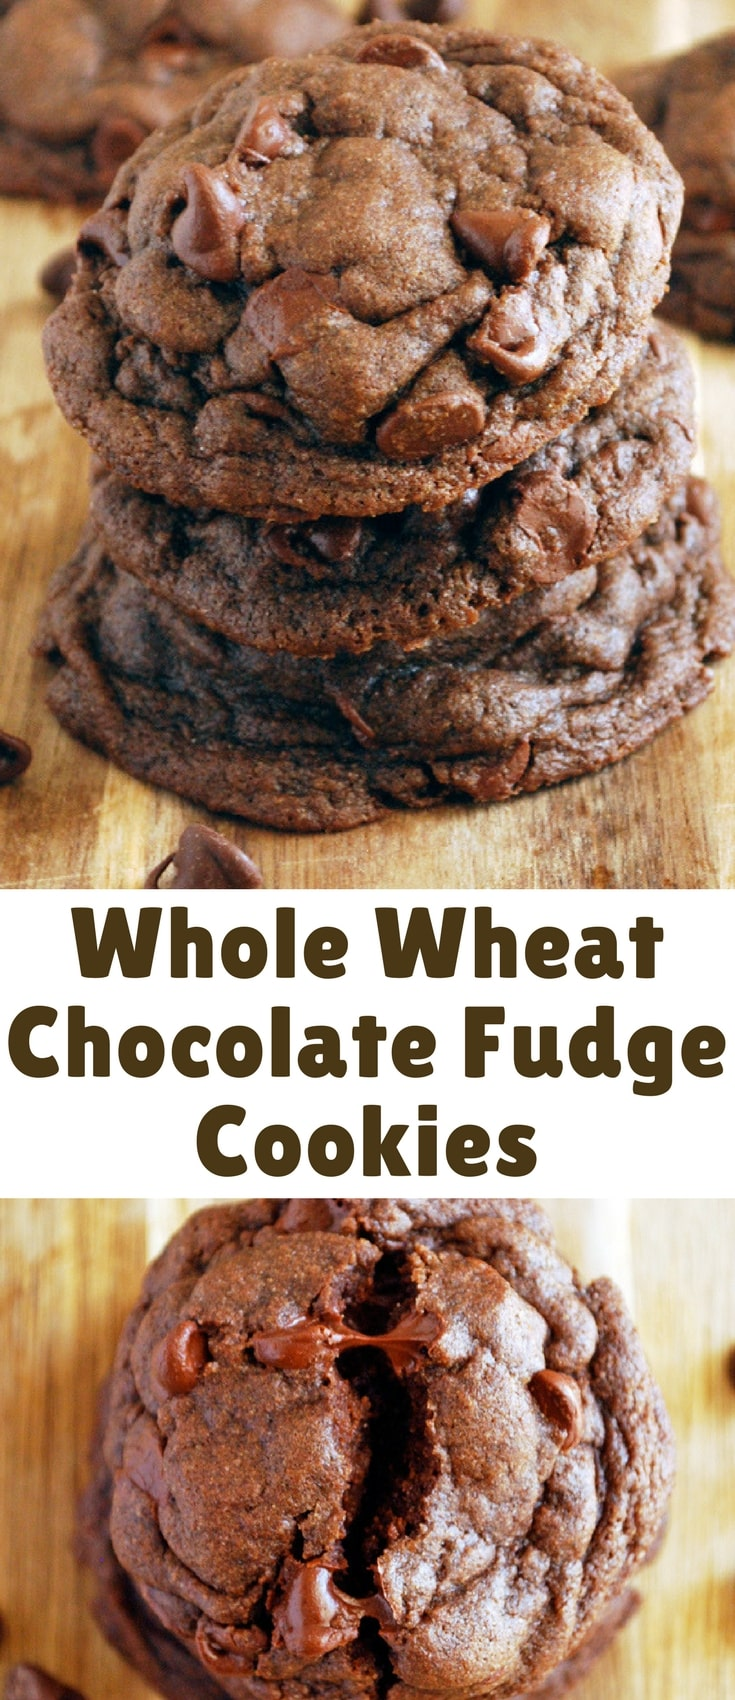 These Whole Wheat Chocolate Fudge Cookies are everything you want in one rich, fudgy cookie!